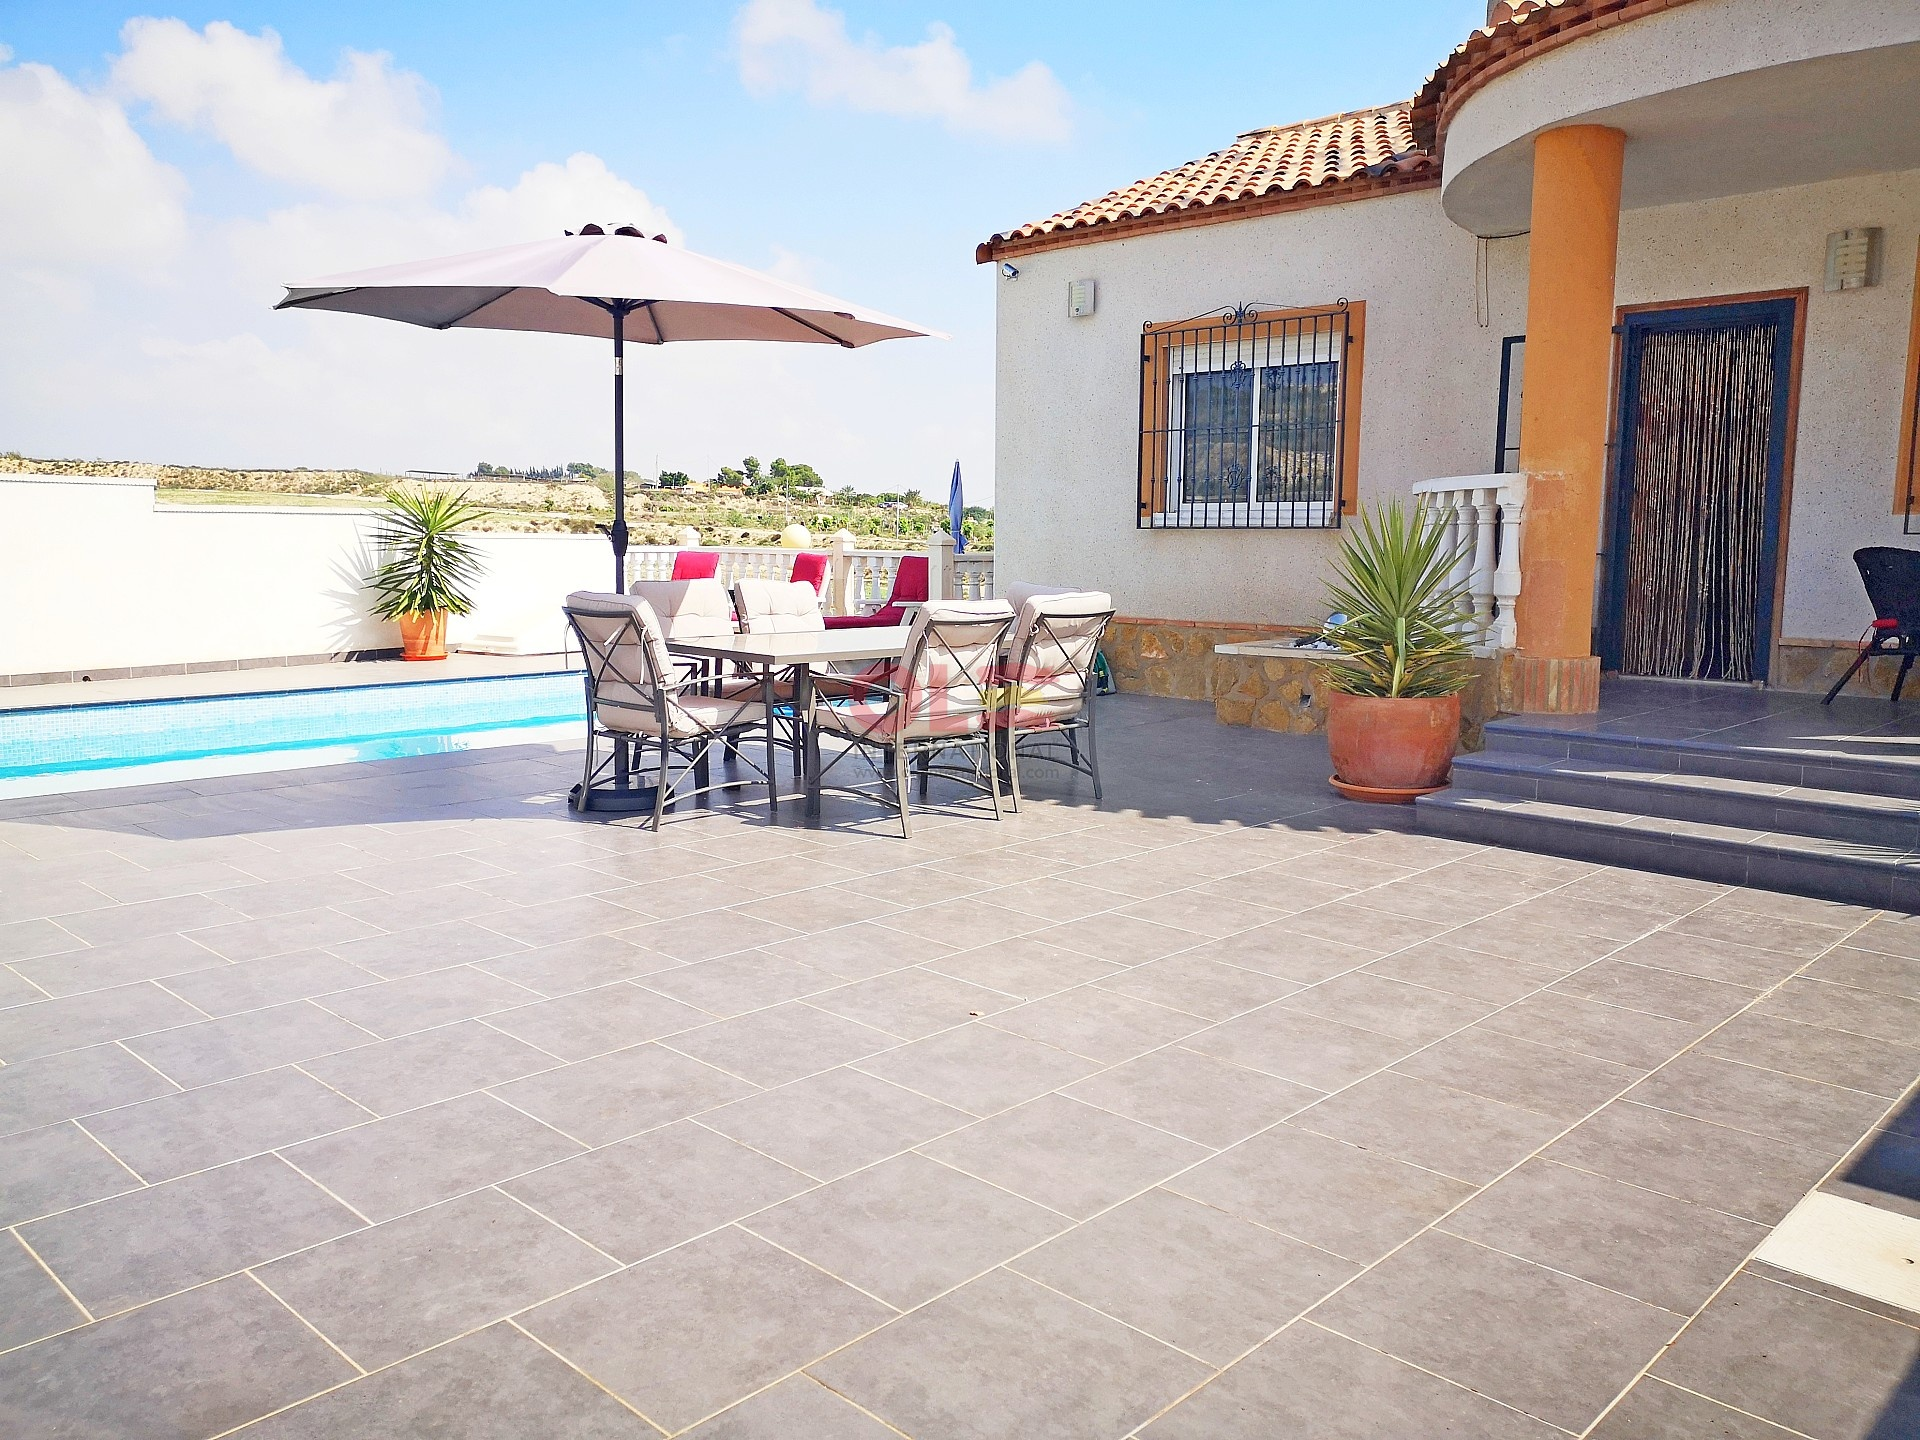 Ref:LE-24570 Villa For Sale in San Miguel de Salinas